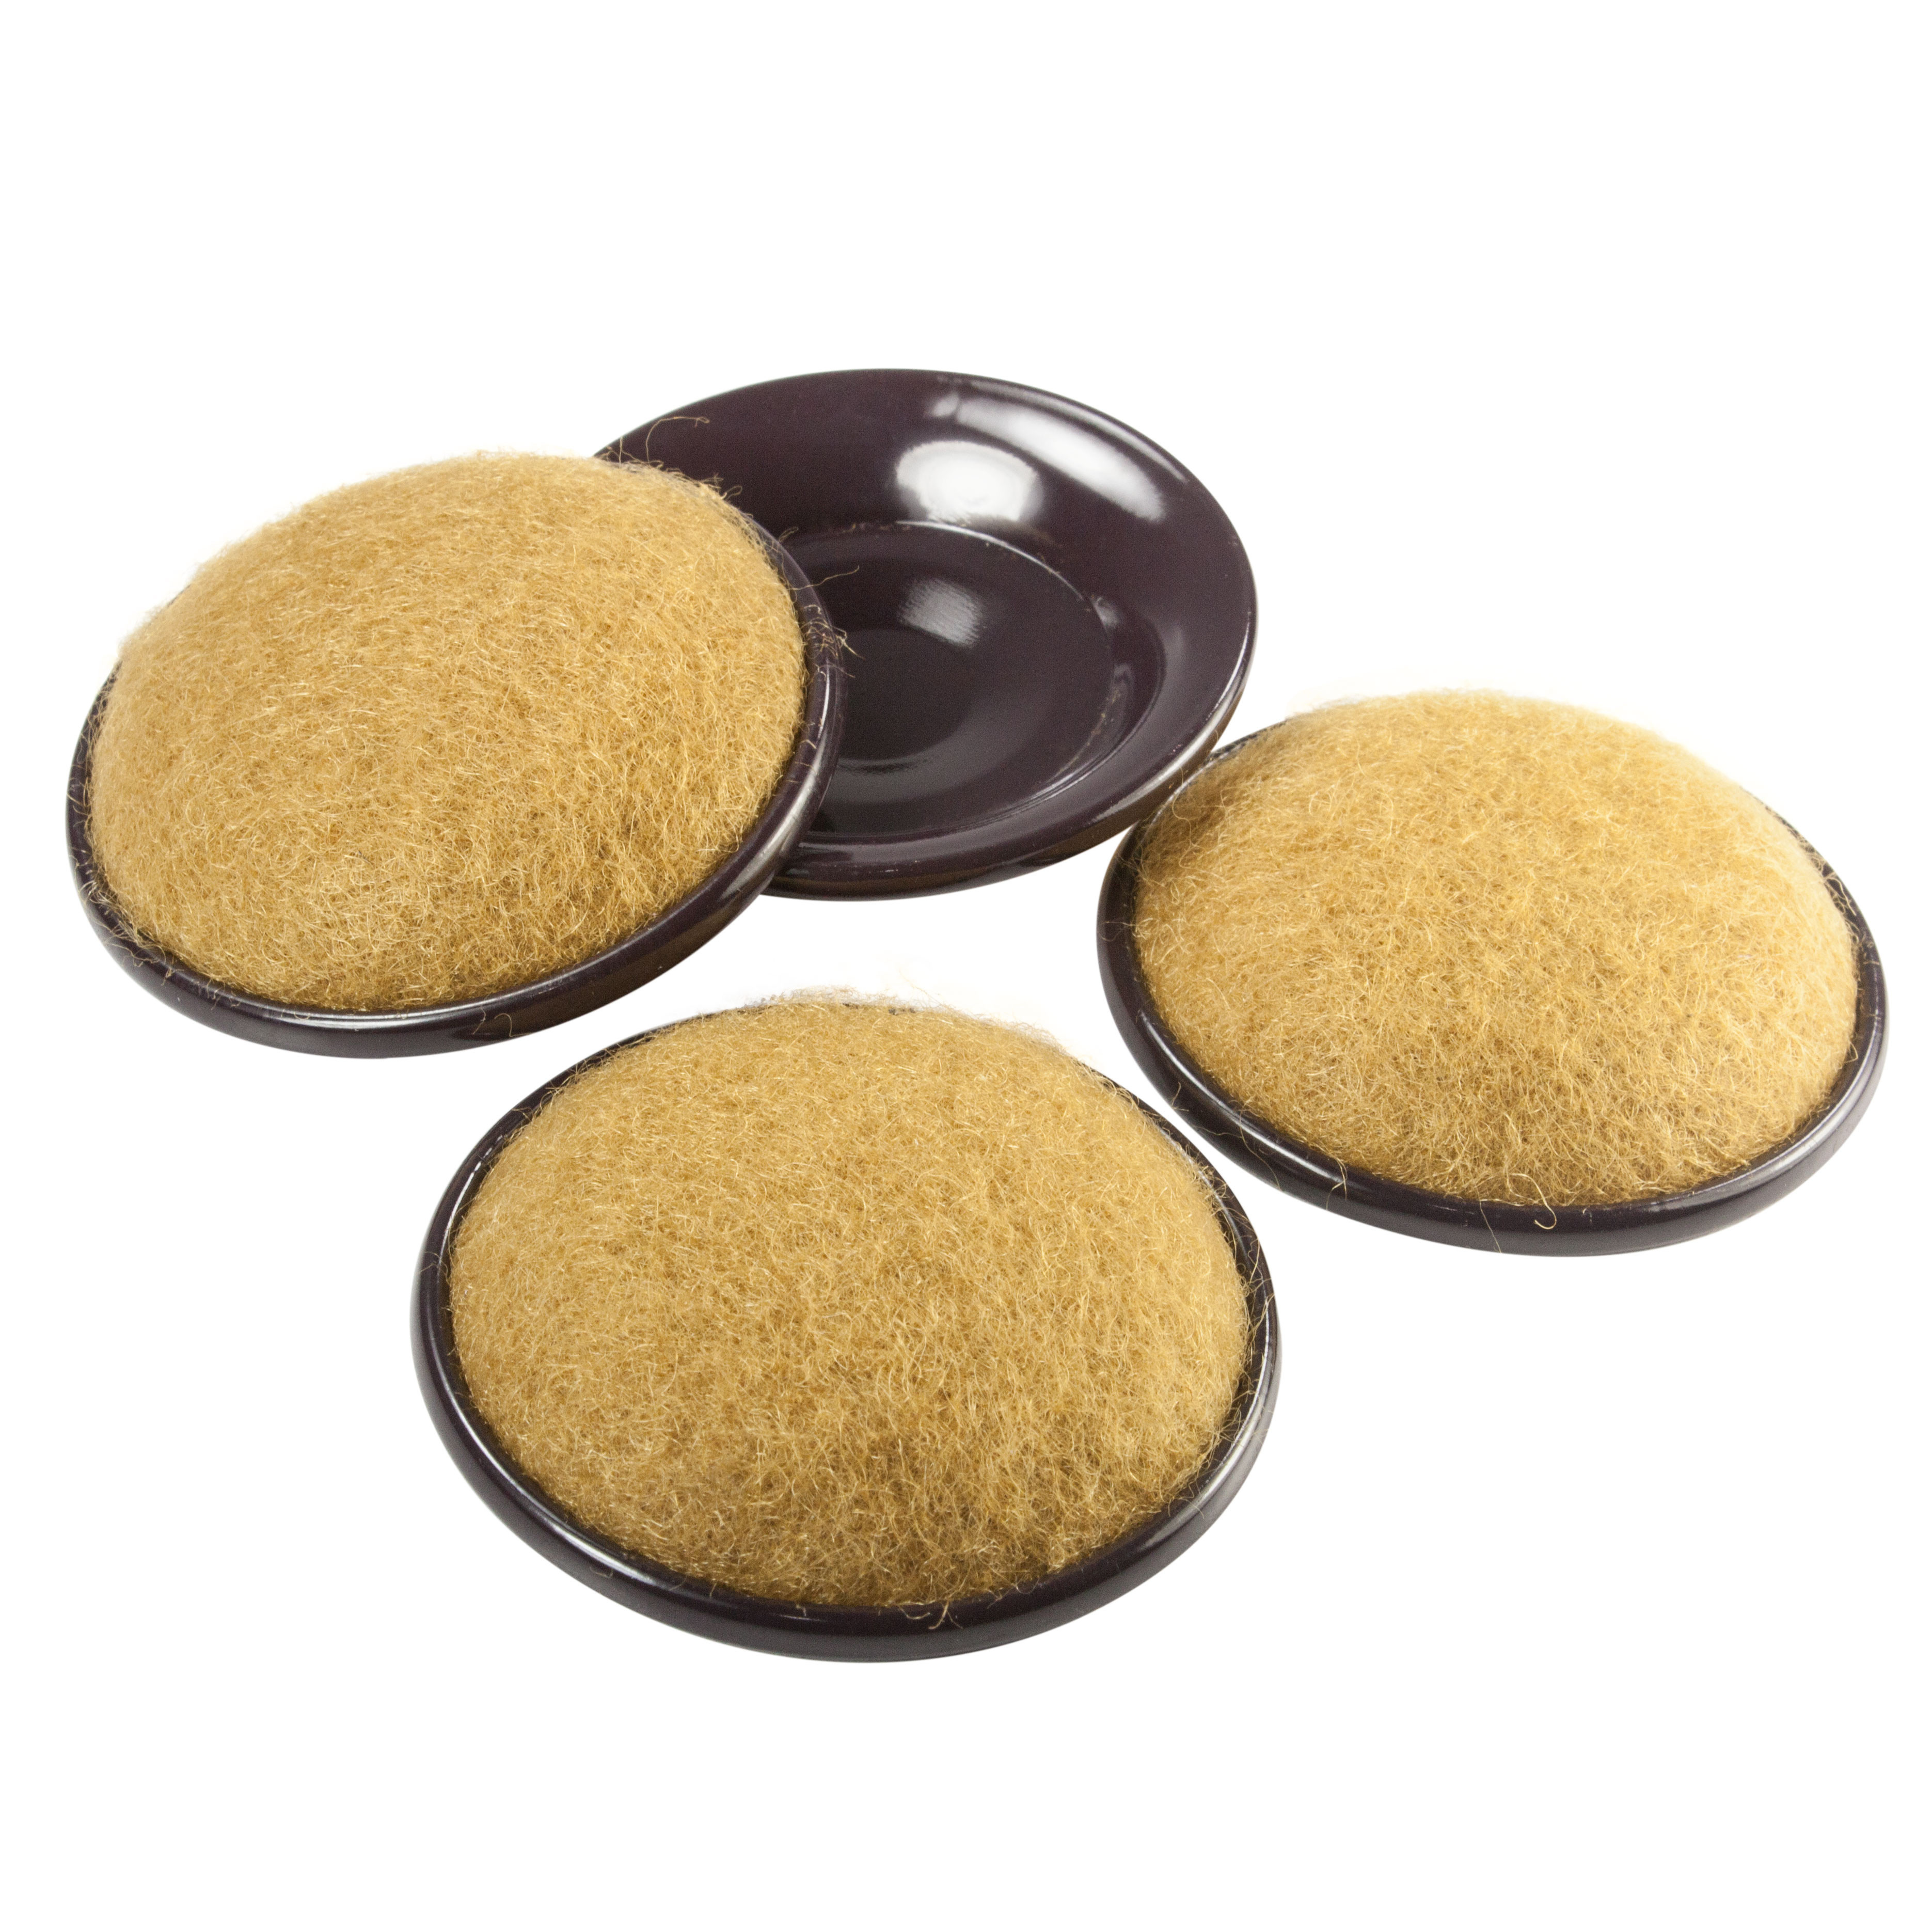 2-1//4 Inch Round Brown Woodgrain Rubber Grip Caster Cups Pack Of 4